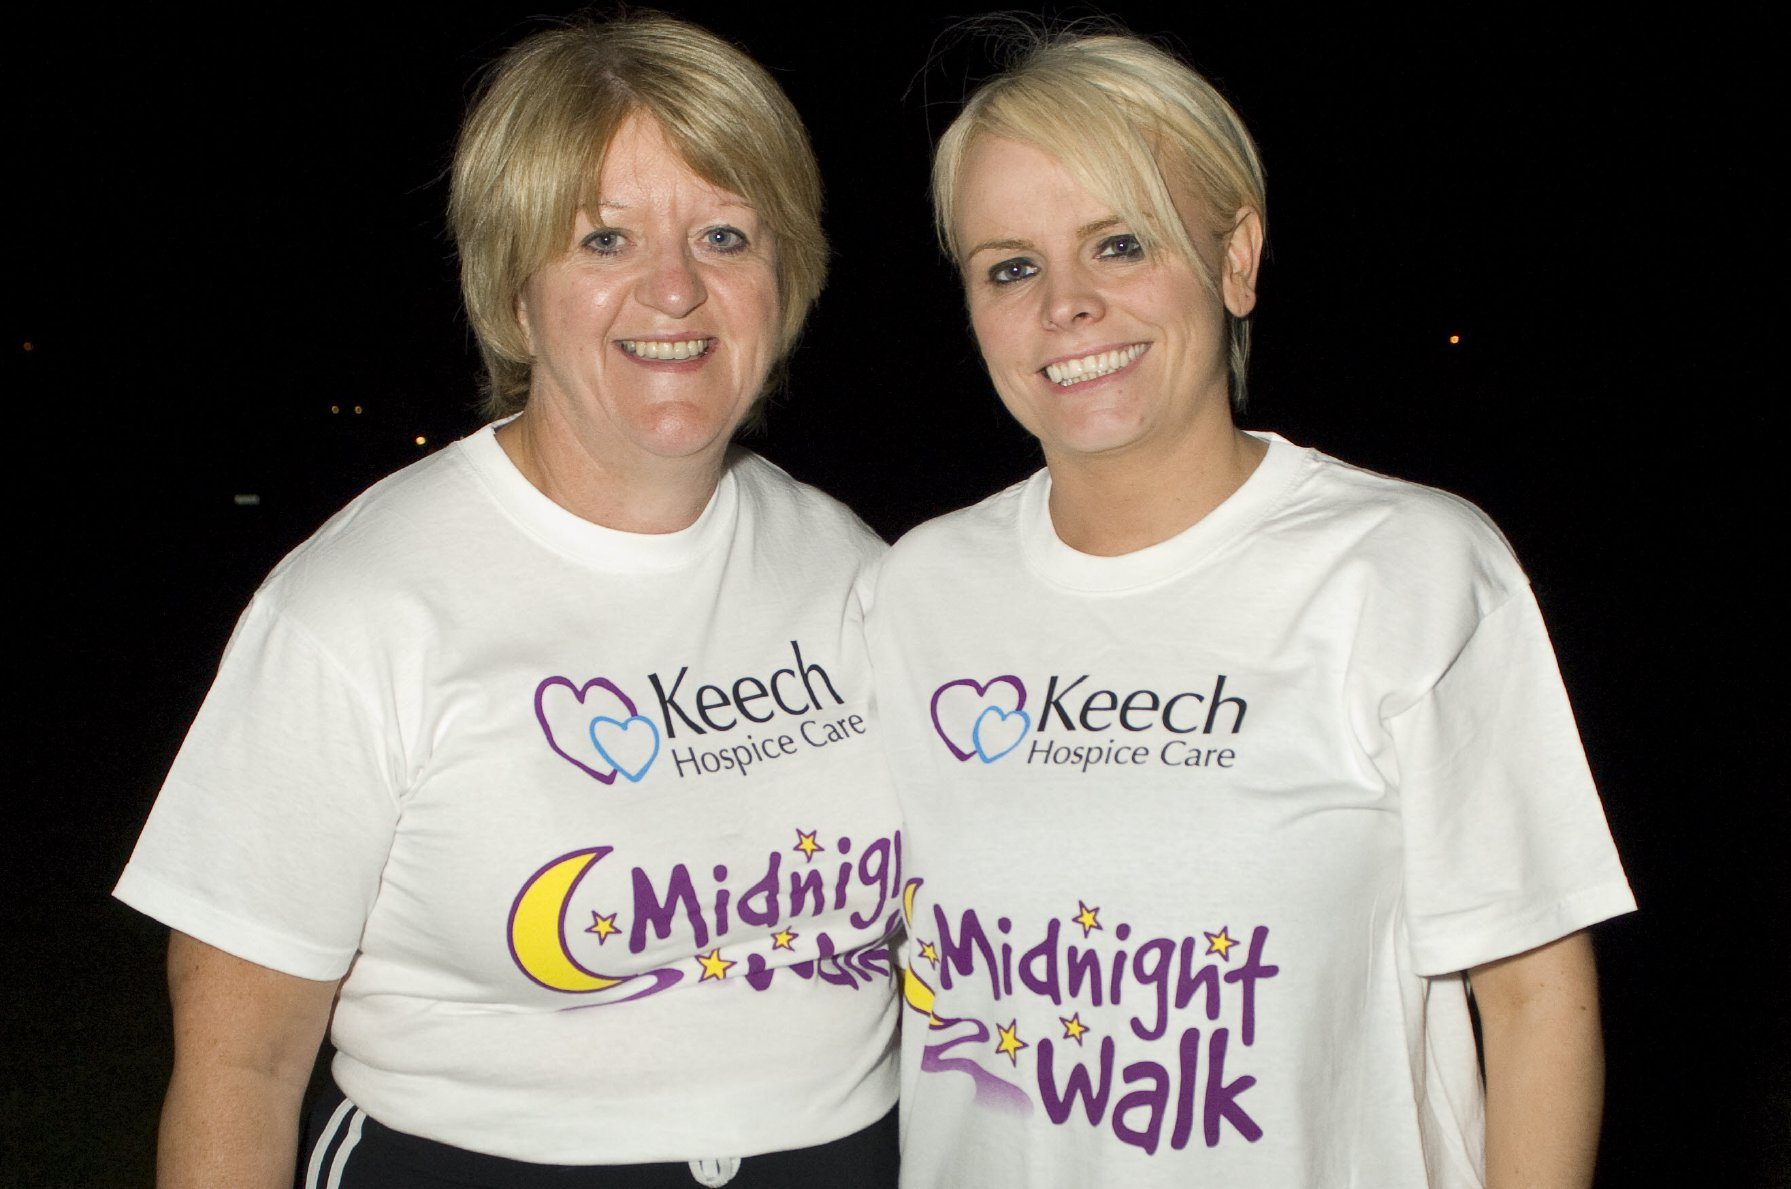 Home Instead owner Maria Collins and daughter Debbie Collins at the Luton Midnight Walk